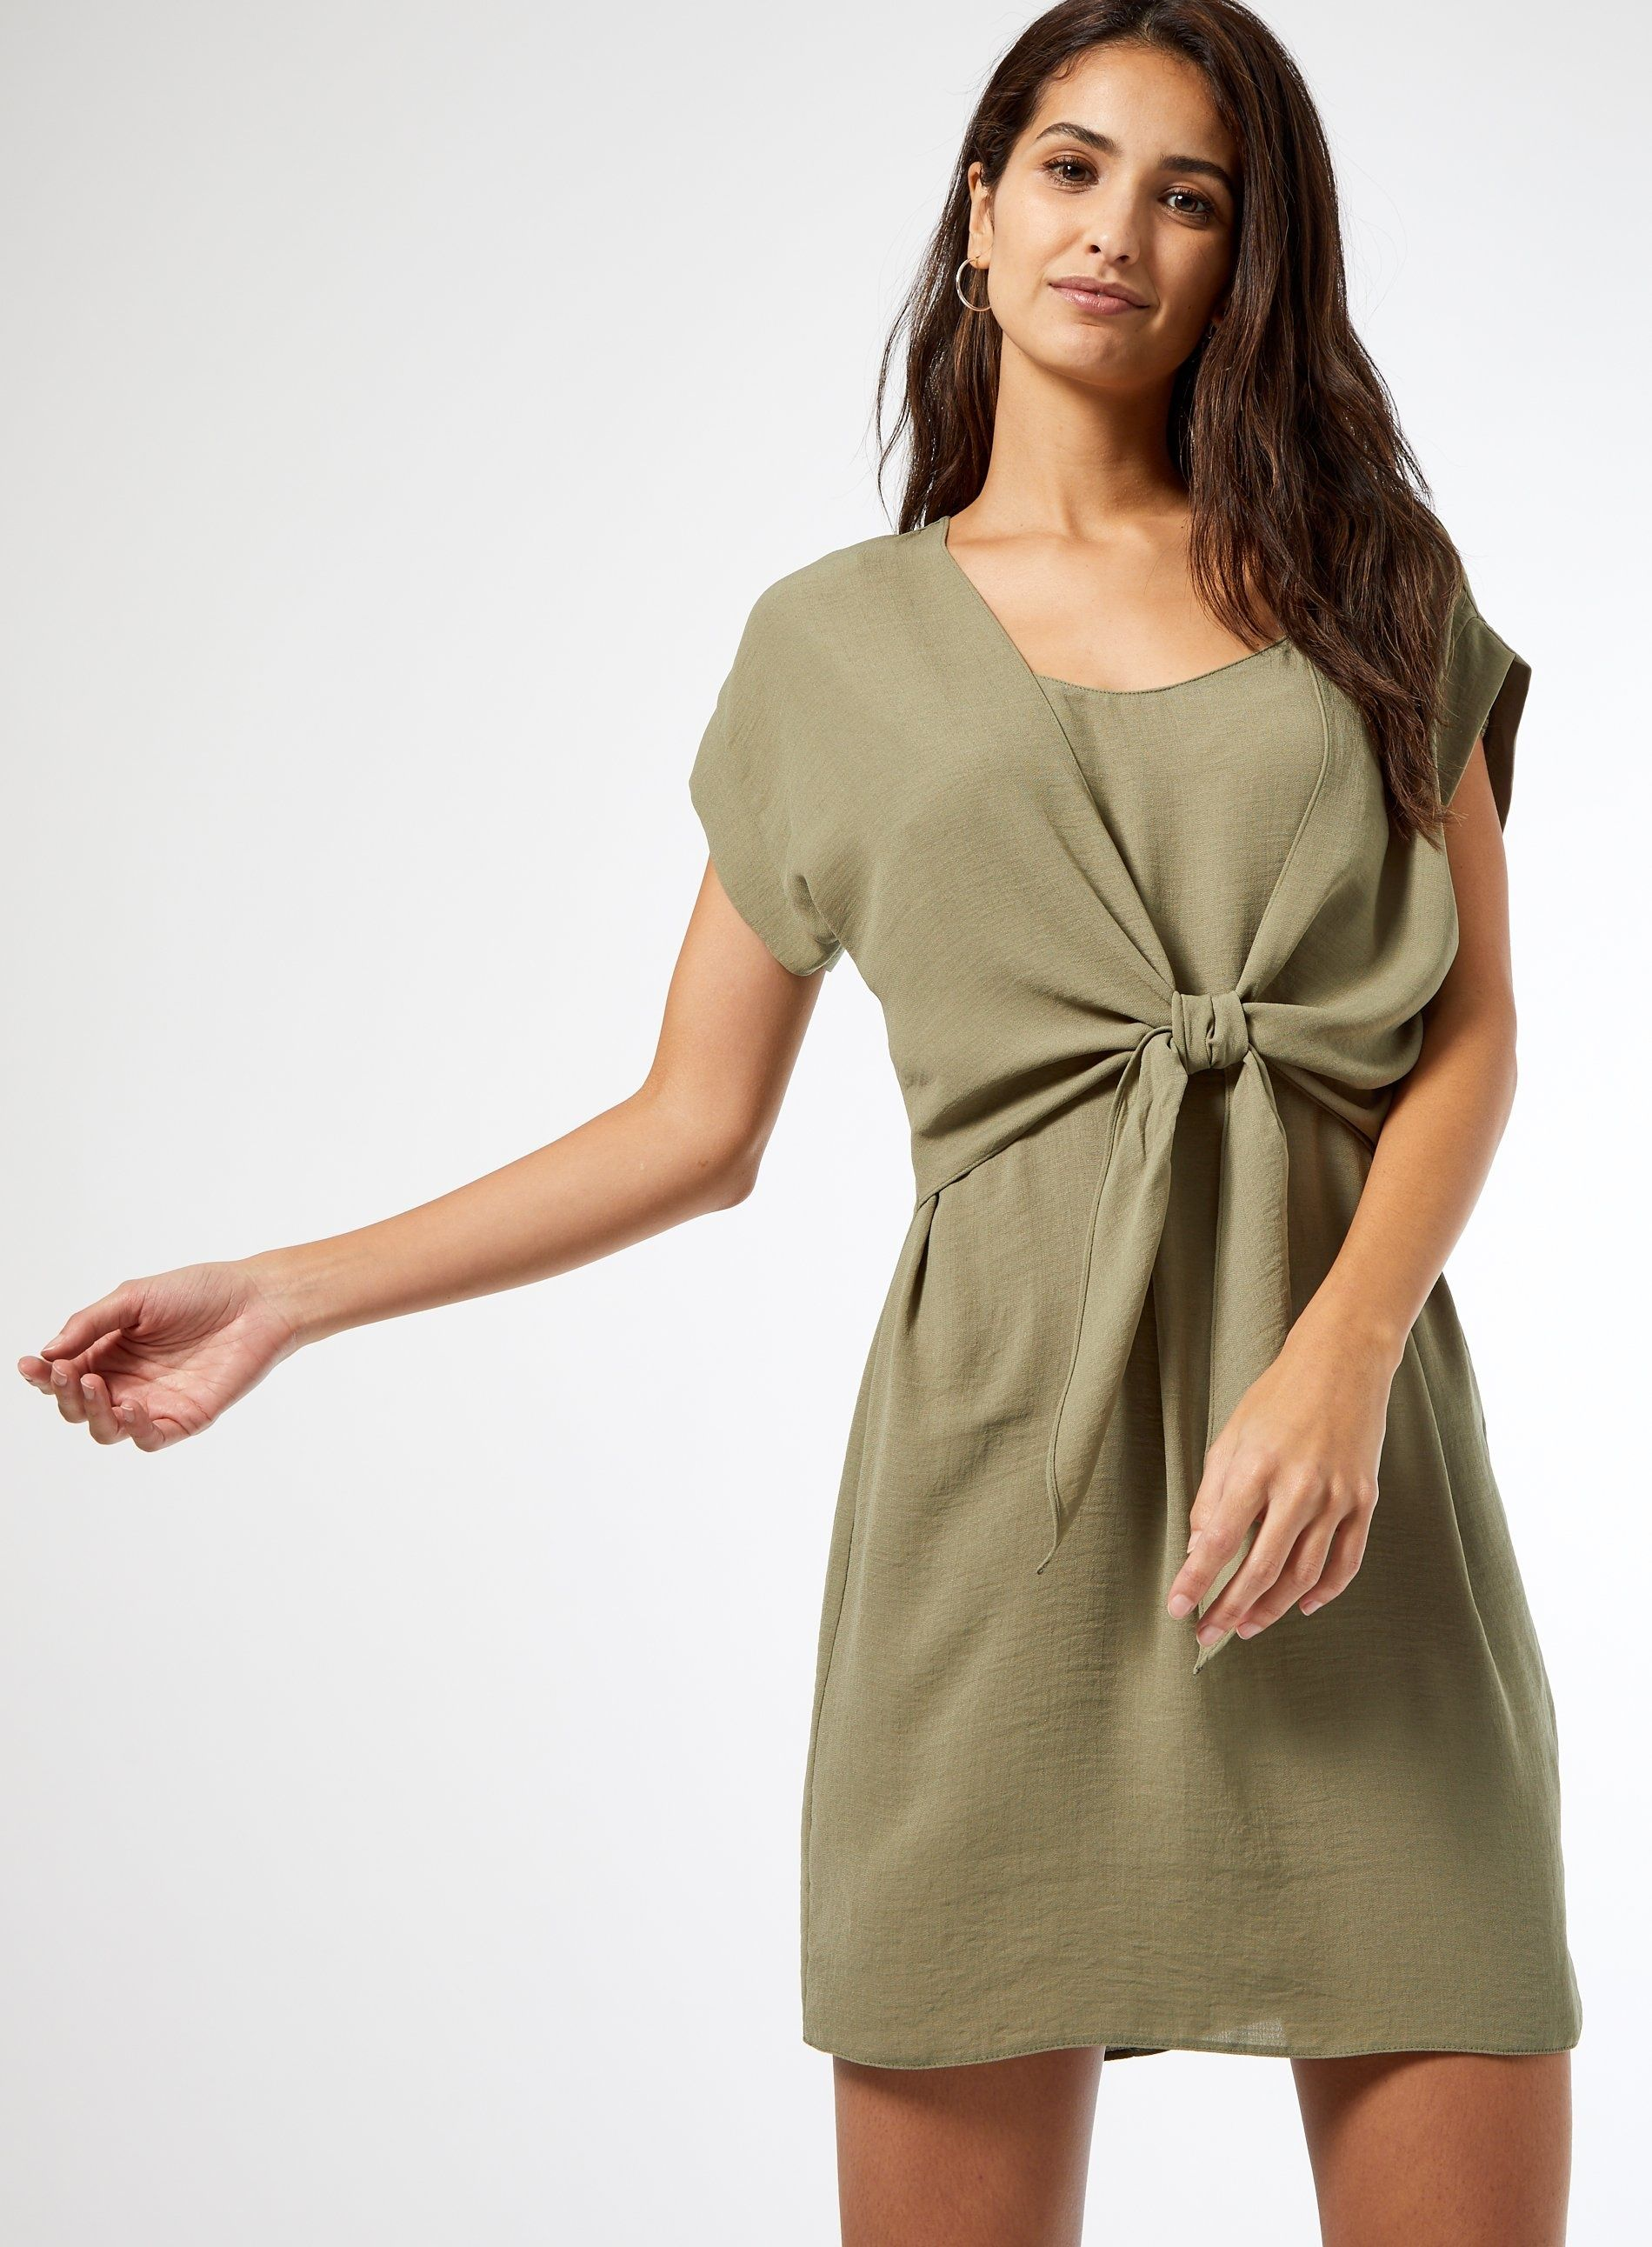 Dorothy Perkins Womens Green 2 in 1 Shirt Dress Short Sleeve Everyday Casual